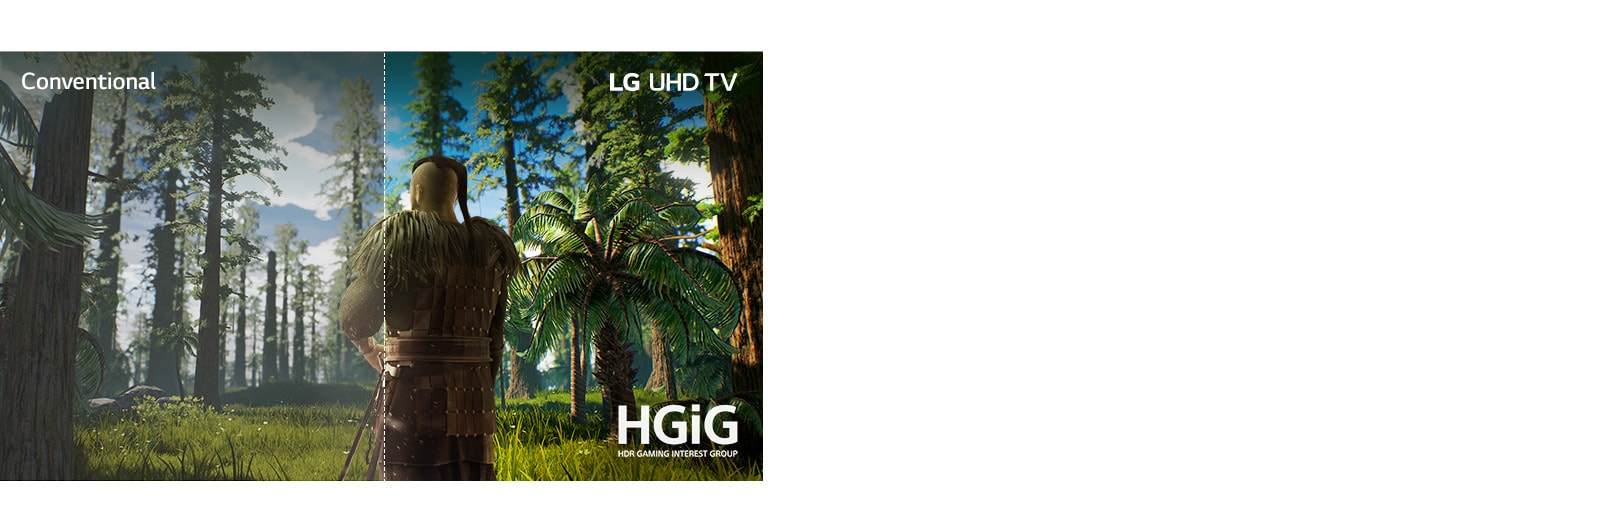 TV screen showing a game scene with the man standing in the middle of a forest. Half is shown on a conventional screen with poor picture quality. Other half is shown on LG UHD TV screen with crisp, vivid picture quality.